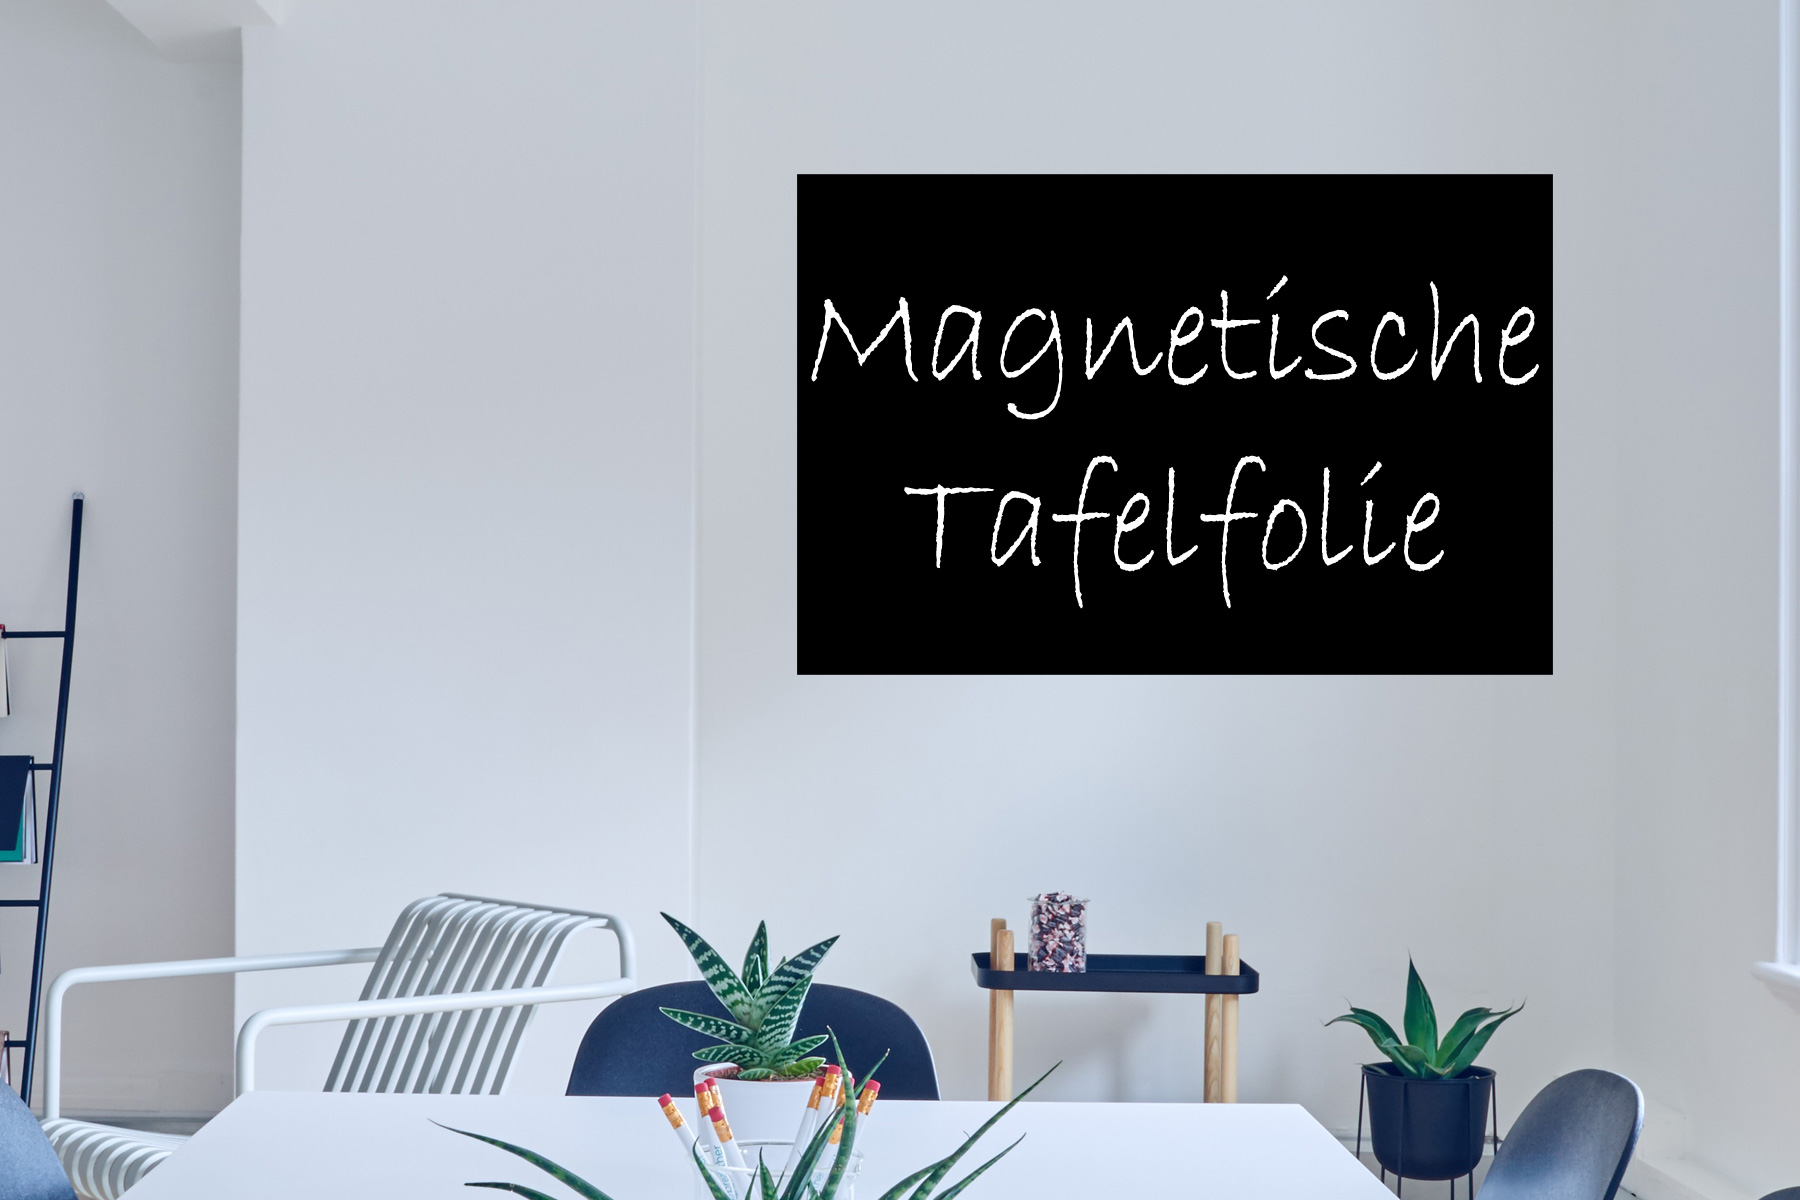 magnetische tafelfolie selbstklebend f r magnete. Black Bedroom Furniture Sets. Home Design Ideas